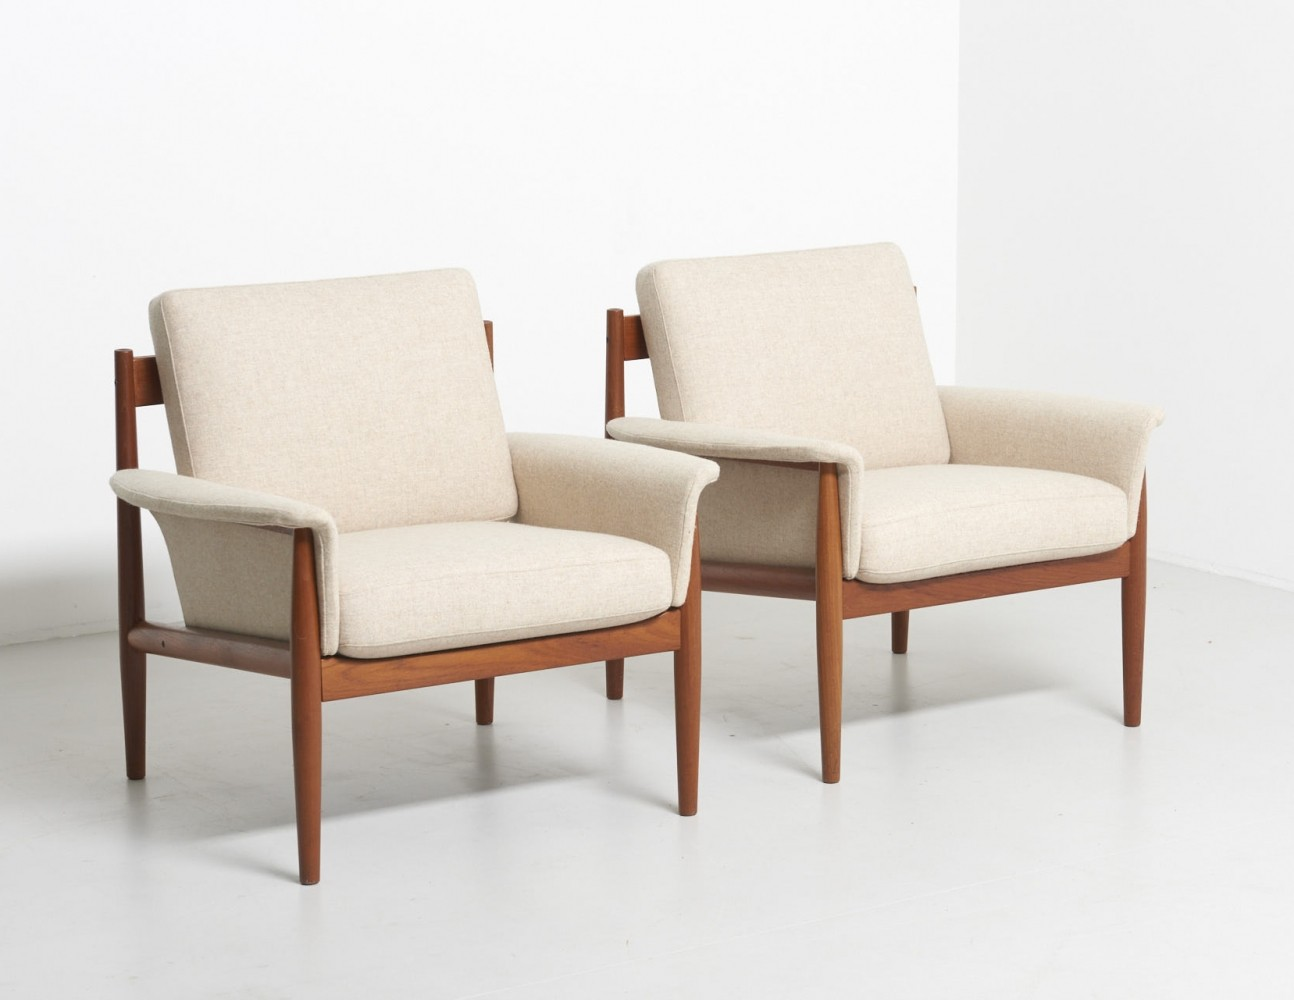 Pair of Armchairs by Grete Jalk for France & Søn, 1960s